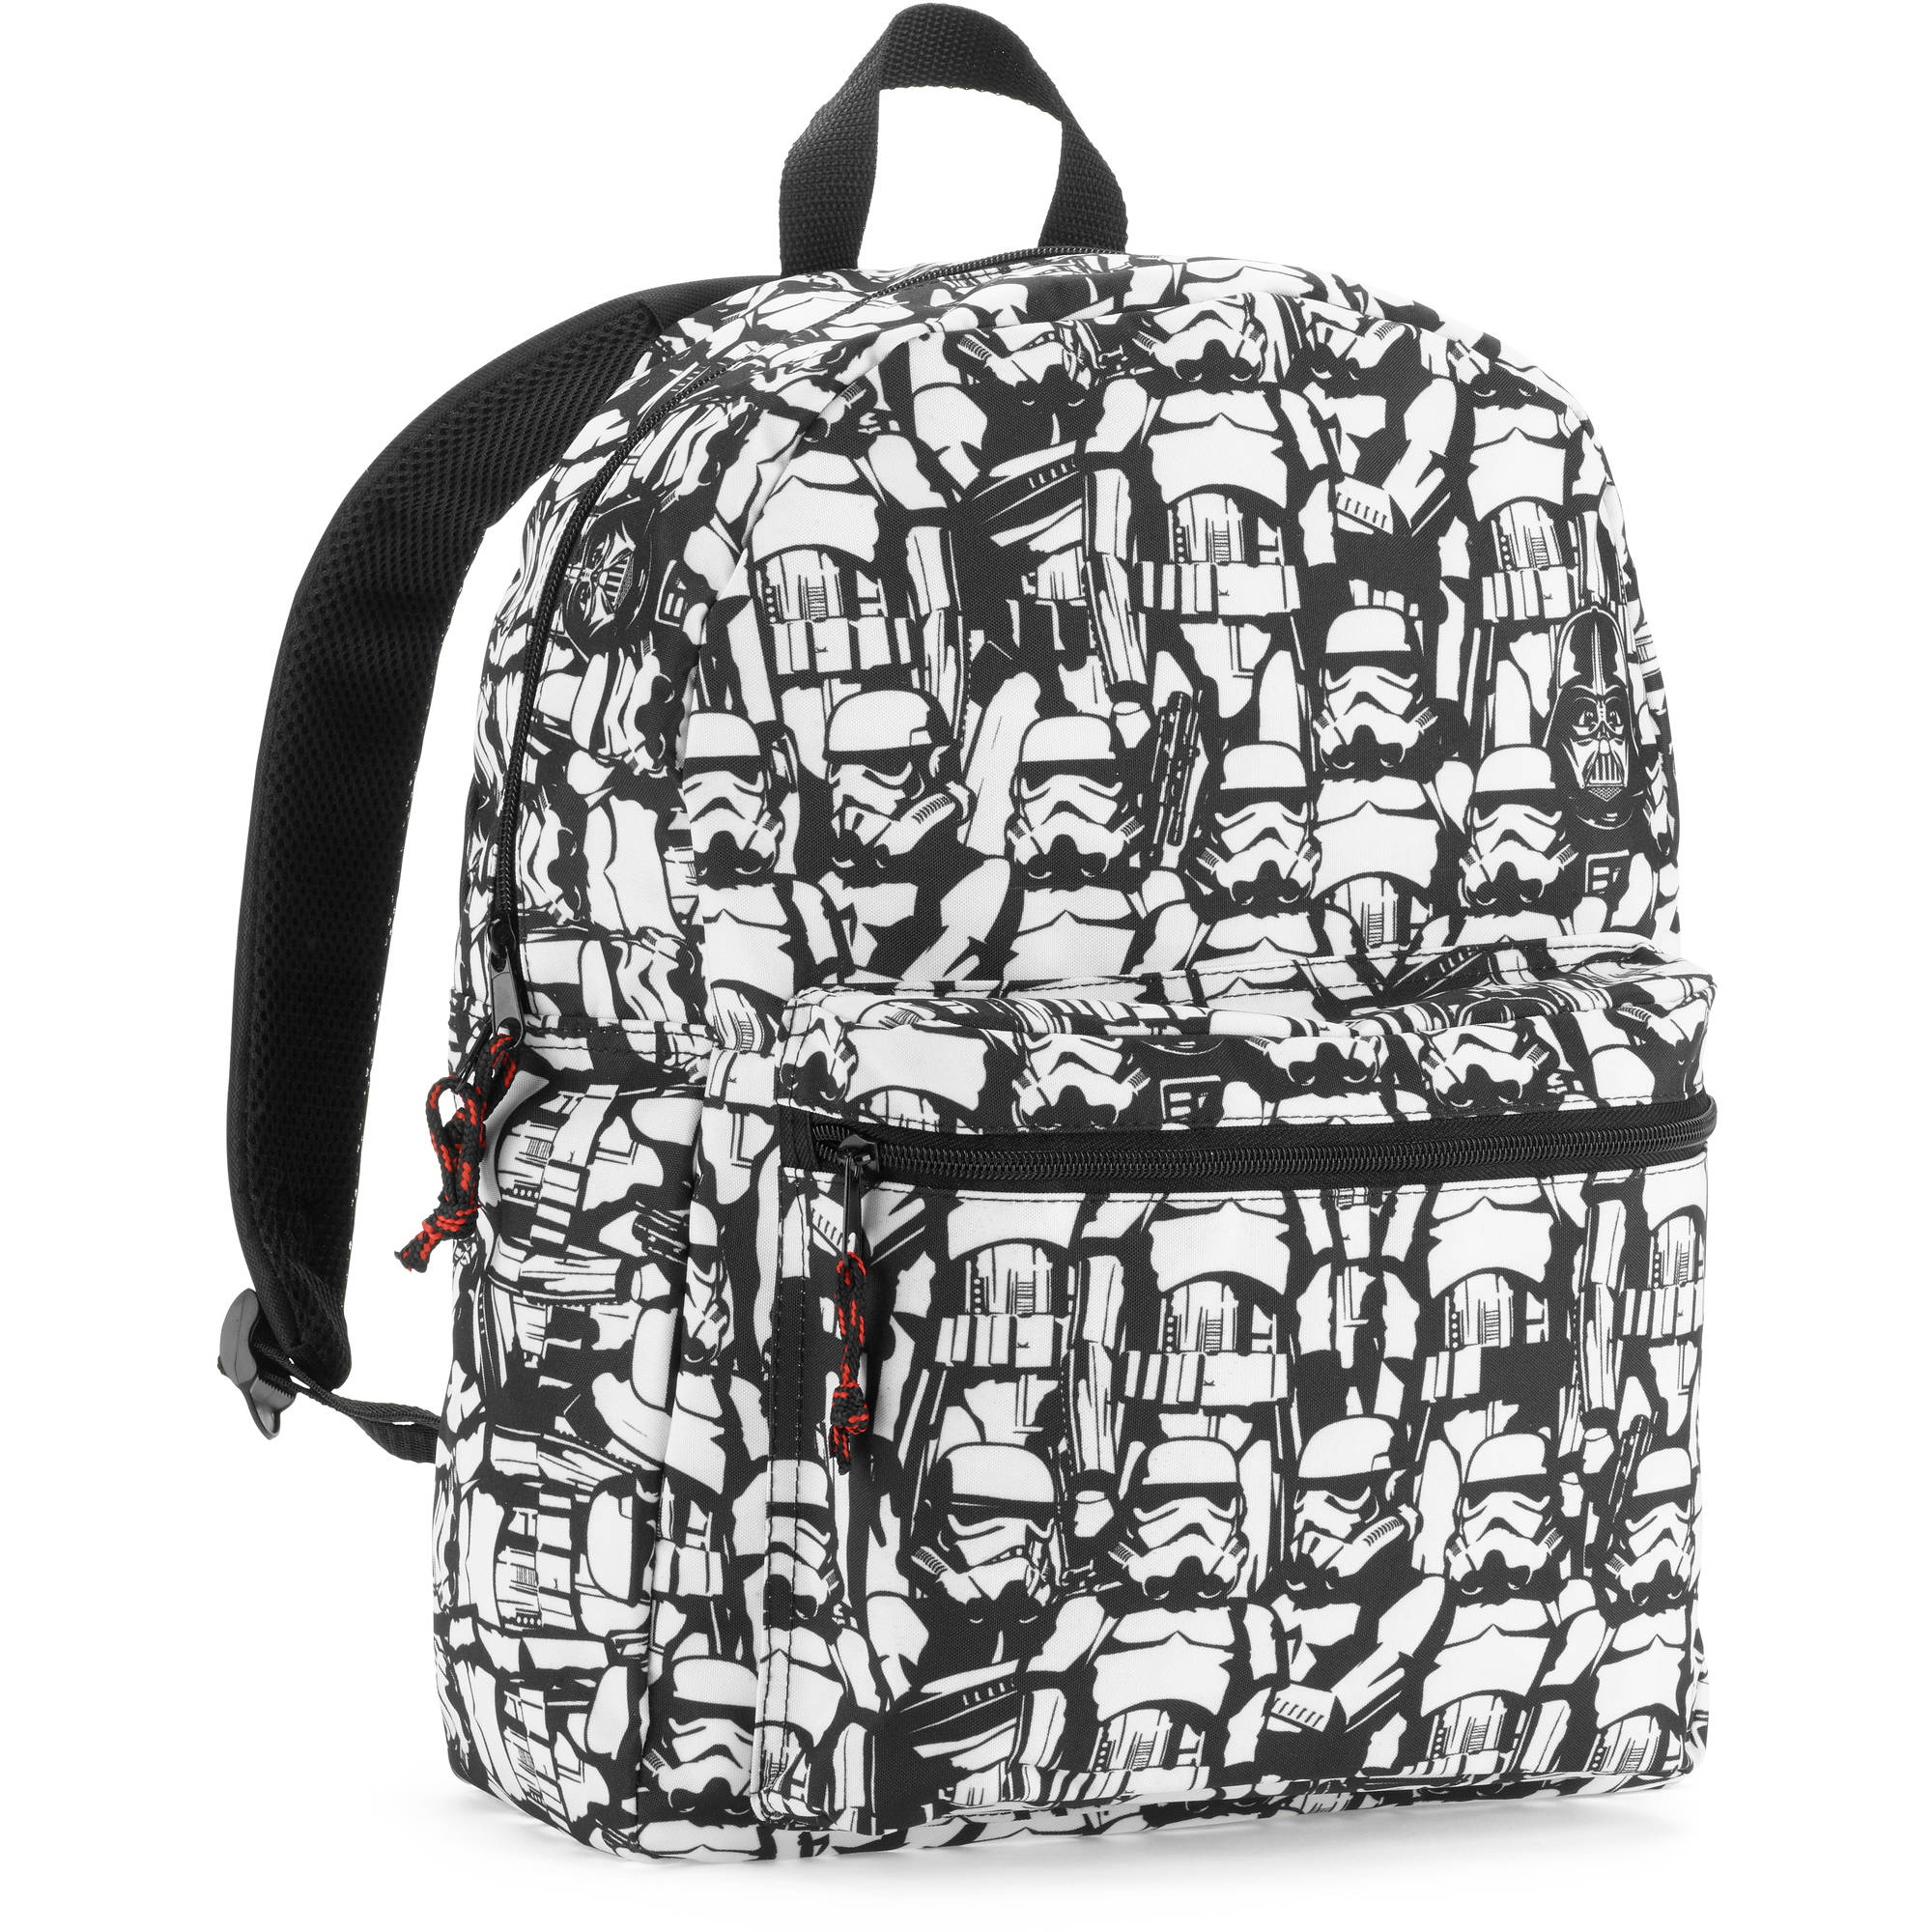 Star Wars Comic Backpack